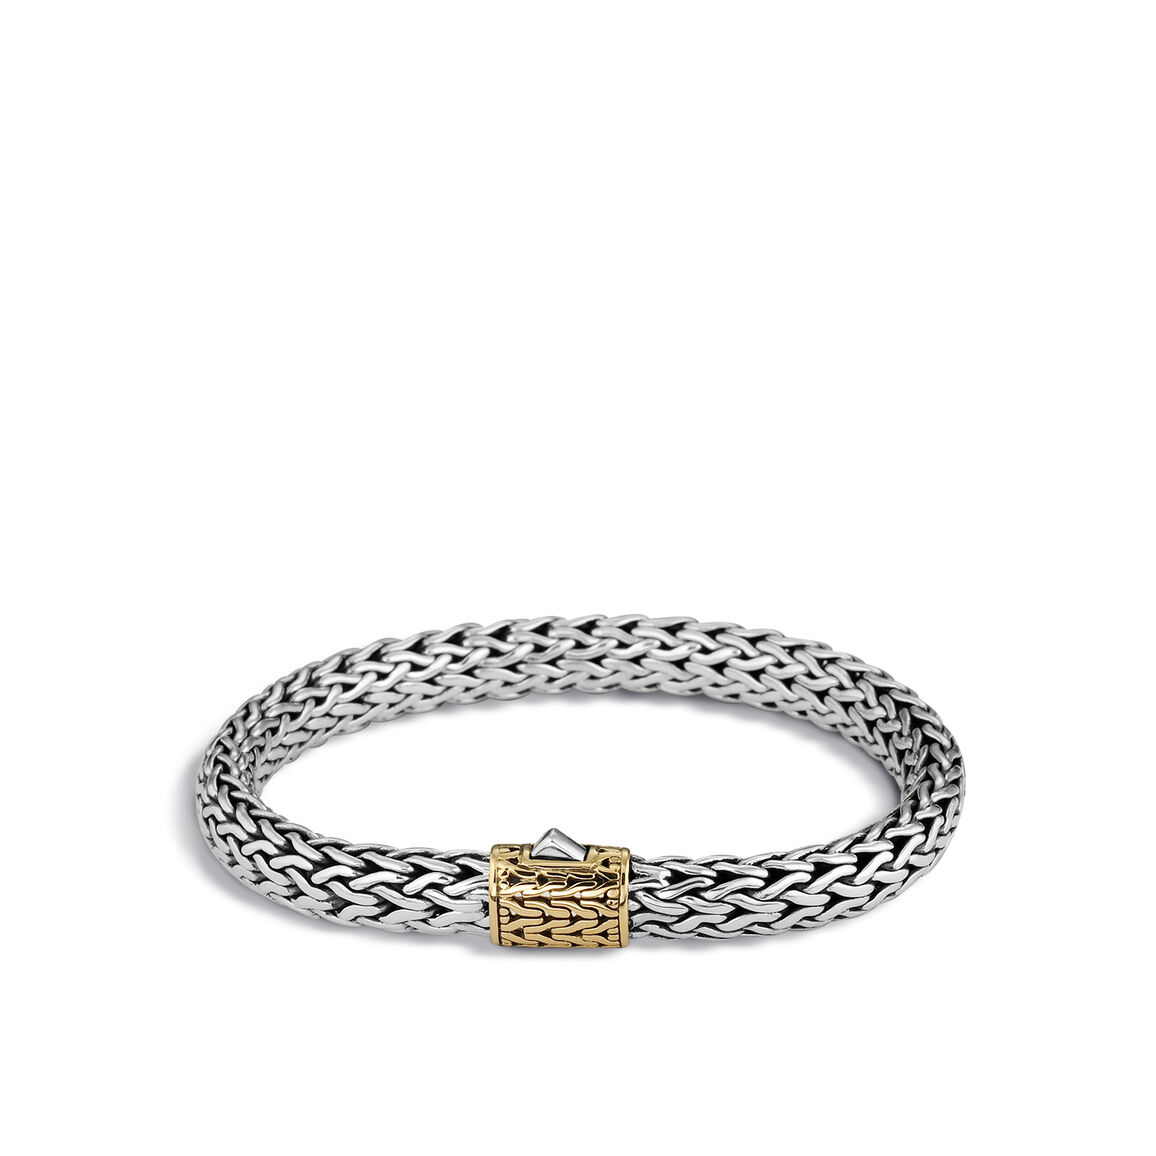 Classic Chain 7.5MM Bracelet in Silver and 18K Gold